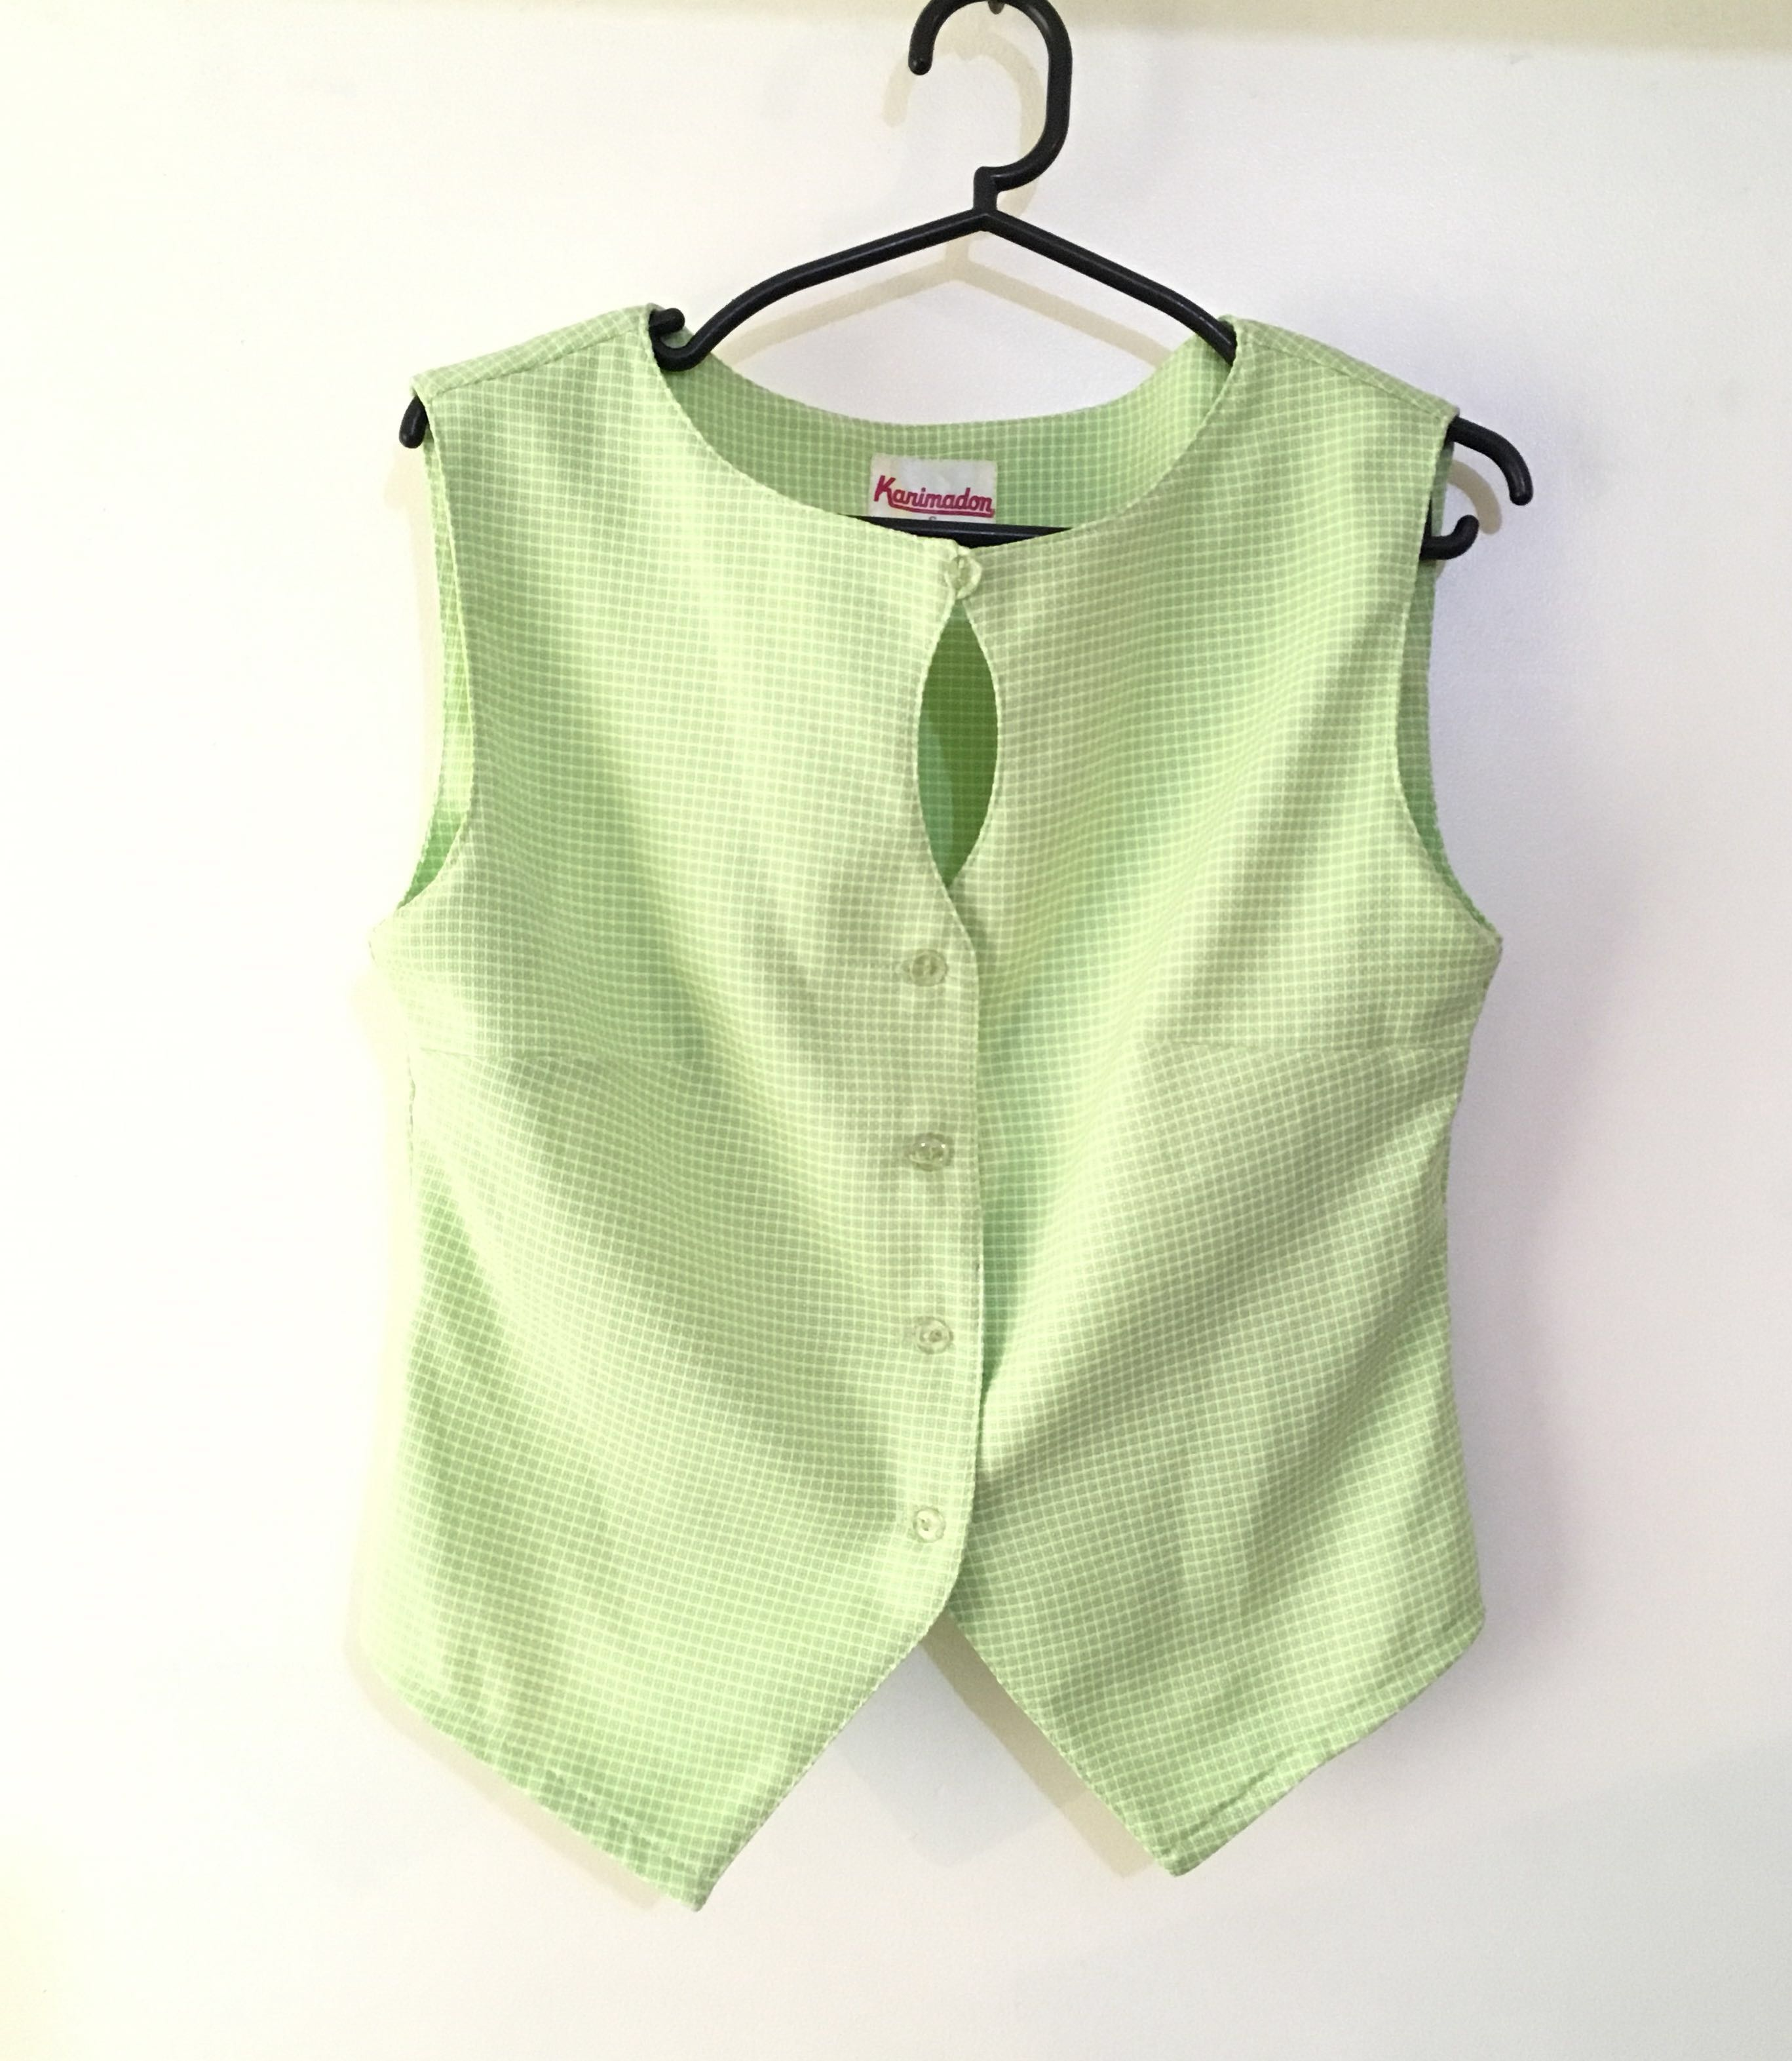 Charity Sale! Authentic Karimadon Checkered Baby Green Keyhole Neck Button Up Women's Sleveless Top can be Vest Size Small